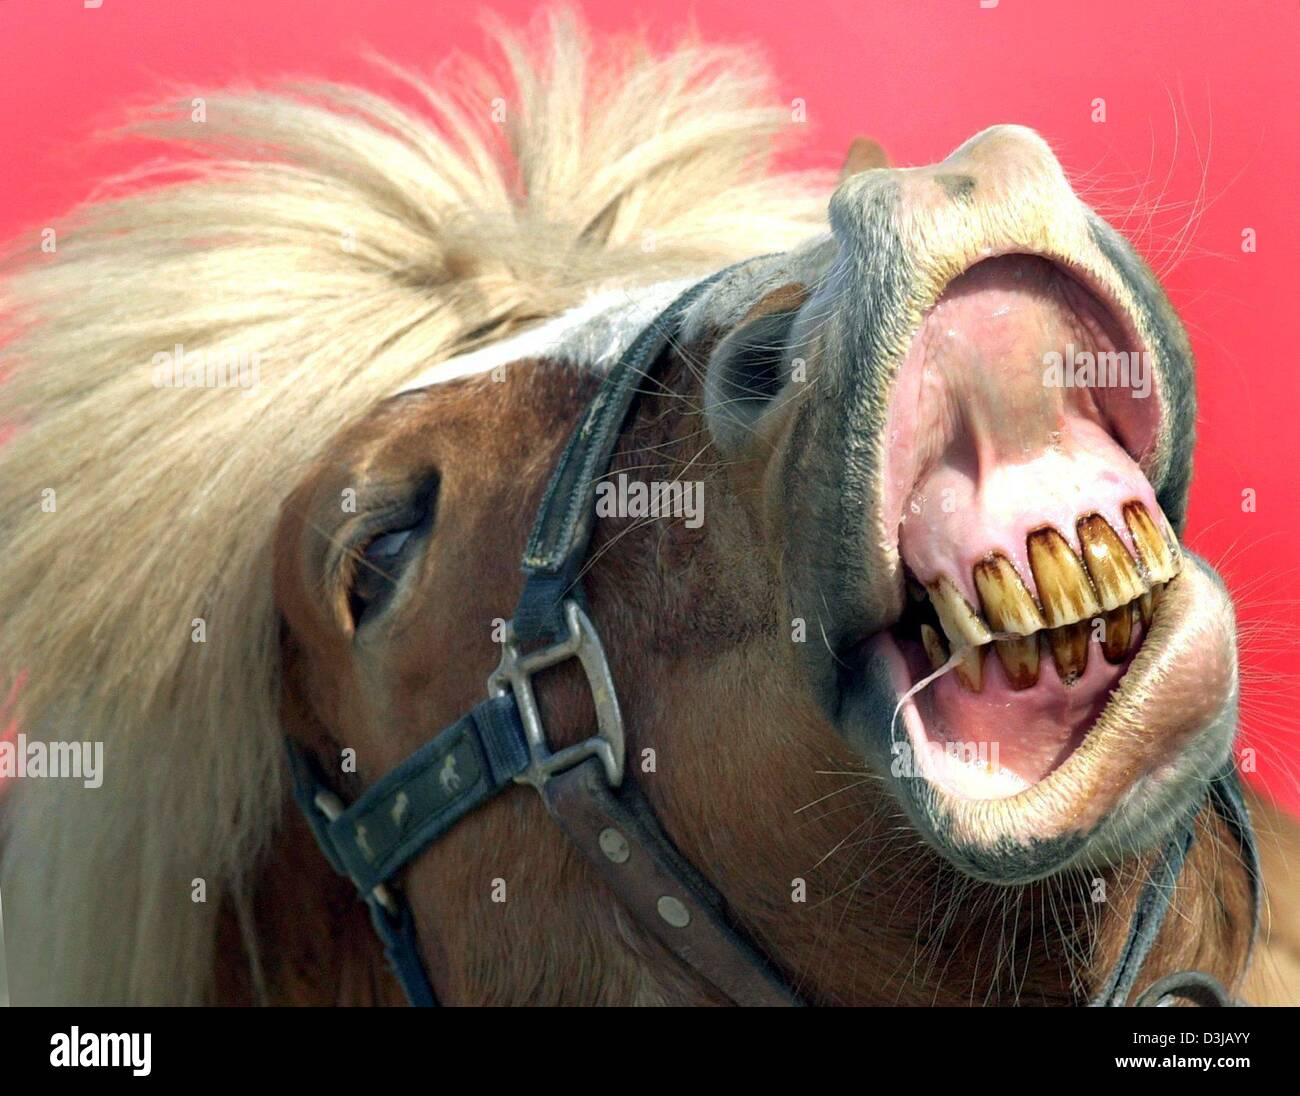 Image of: Smile Search Results For Human Interest Hum Animals Horse Teeth Mouth Brownteeth Tooth Haflinger Germany Stock Photos And Images Exceptional Smiles Family Dentistry Human Interest Hum Animals Horse Teeth Mouth Brownteeth Tooth